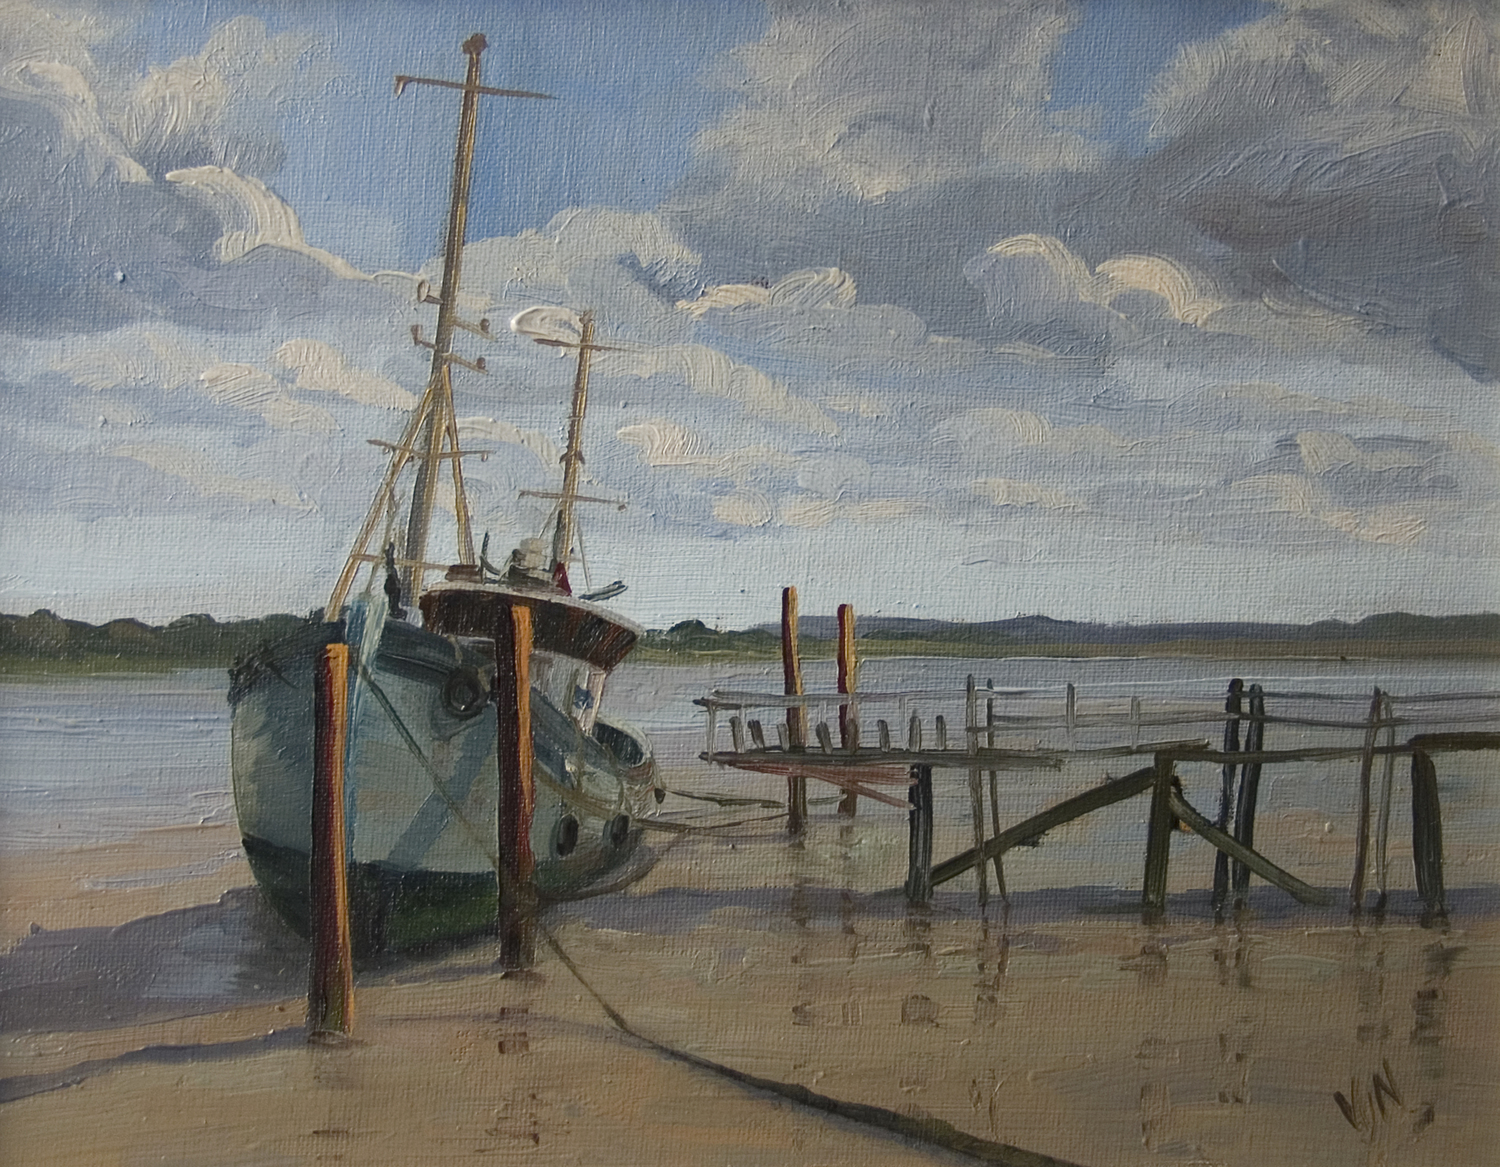 Heybridge Basin 24x30cm Oil on canvas board